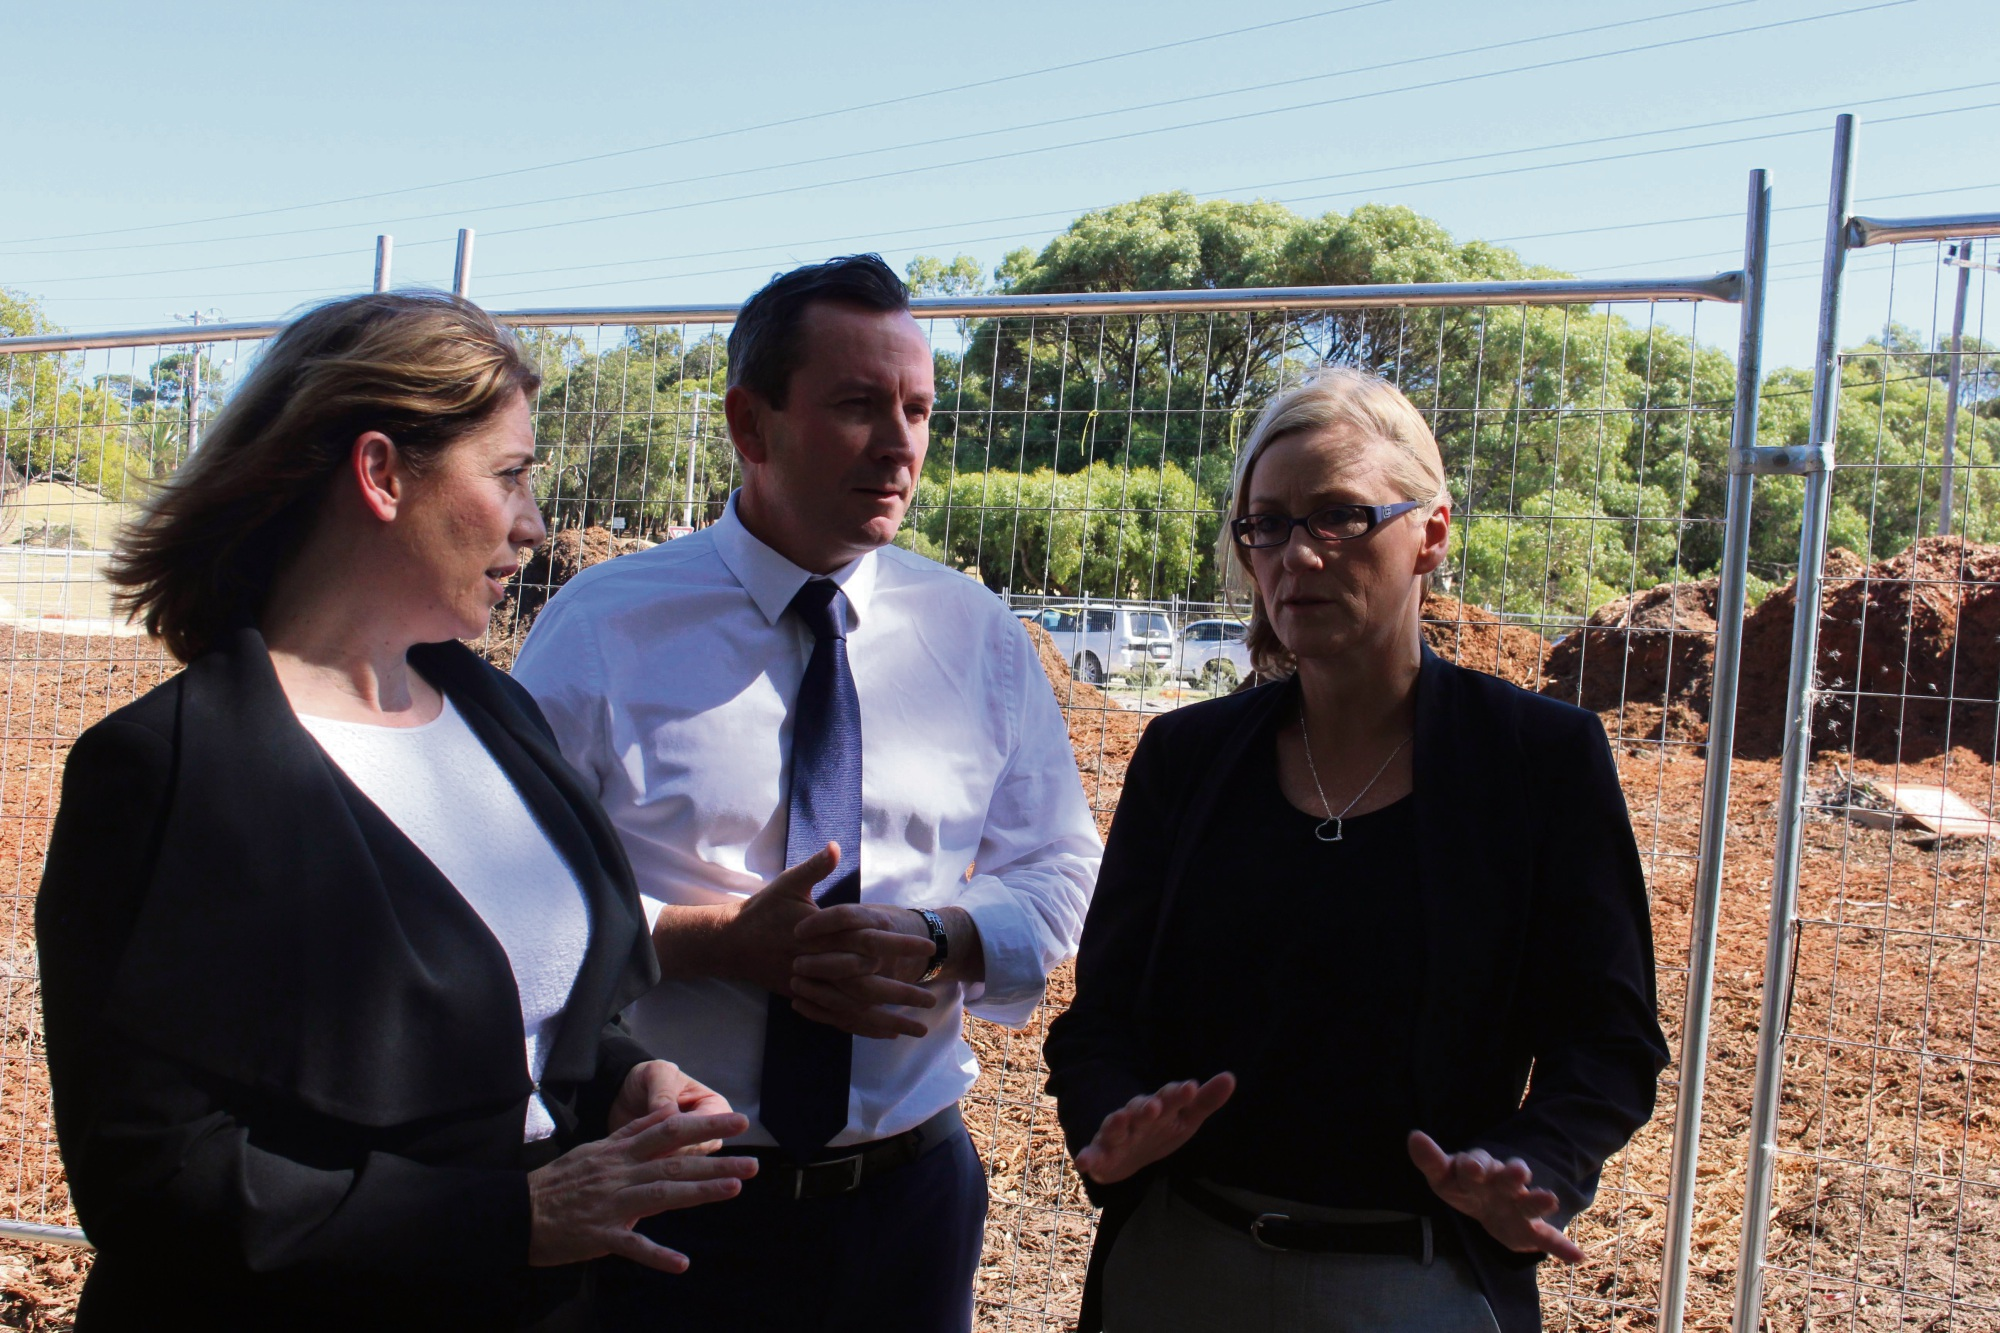 Photo: Transport Minister Rita Saffioti, Premier Mark McGowan and Bicton MLA Lisa O'Malley